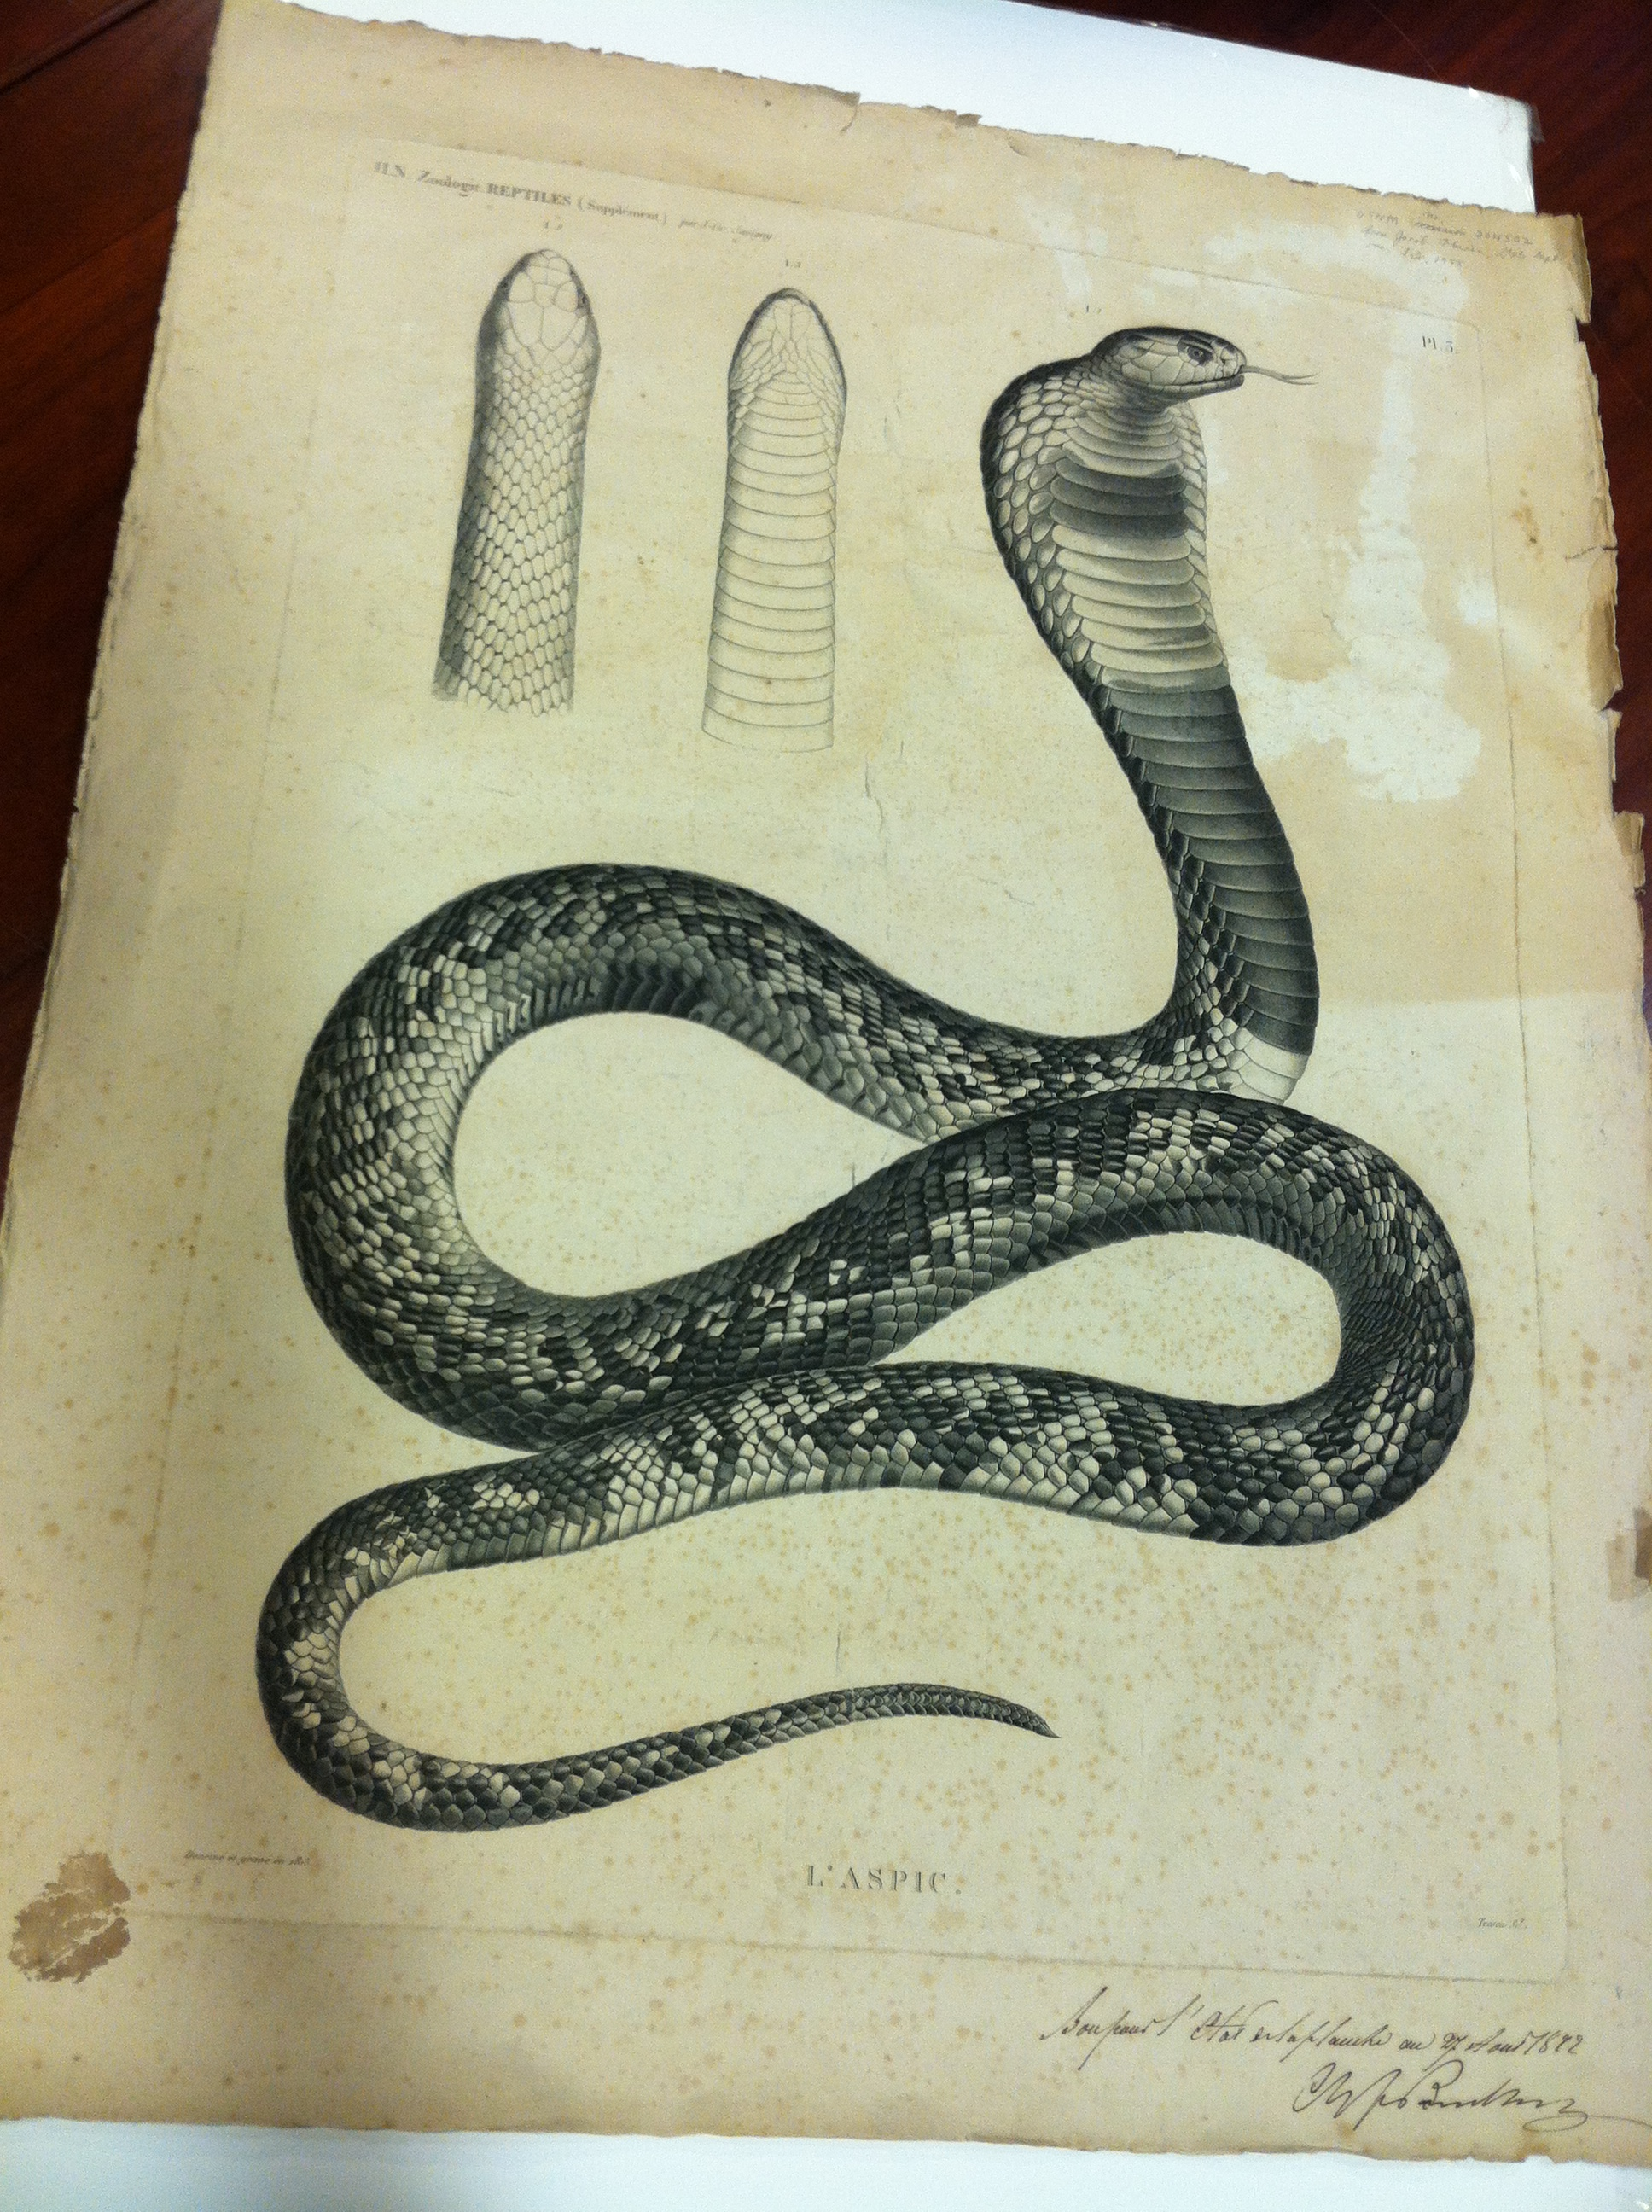 A Snake in the Library or the Mysterious Whereabouts of the Villa Warden a Former United